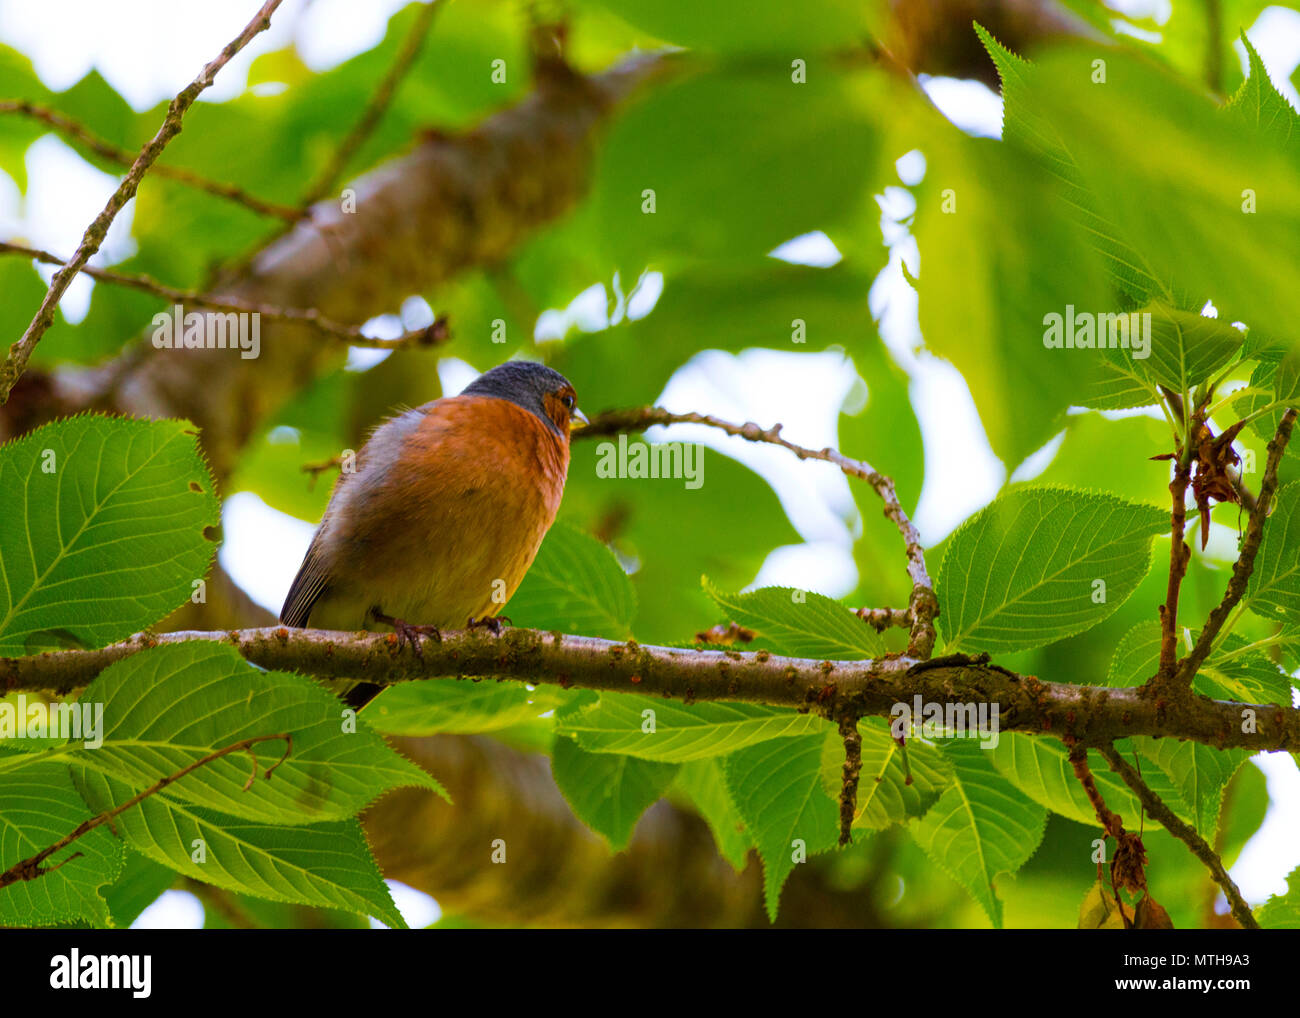 Beautiful photos of Finch Bird in its natural habitat! Visit my page to see other captures like this! - Stock Image